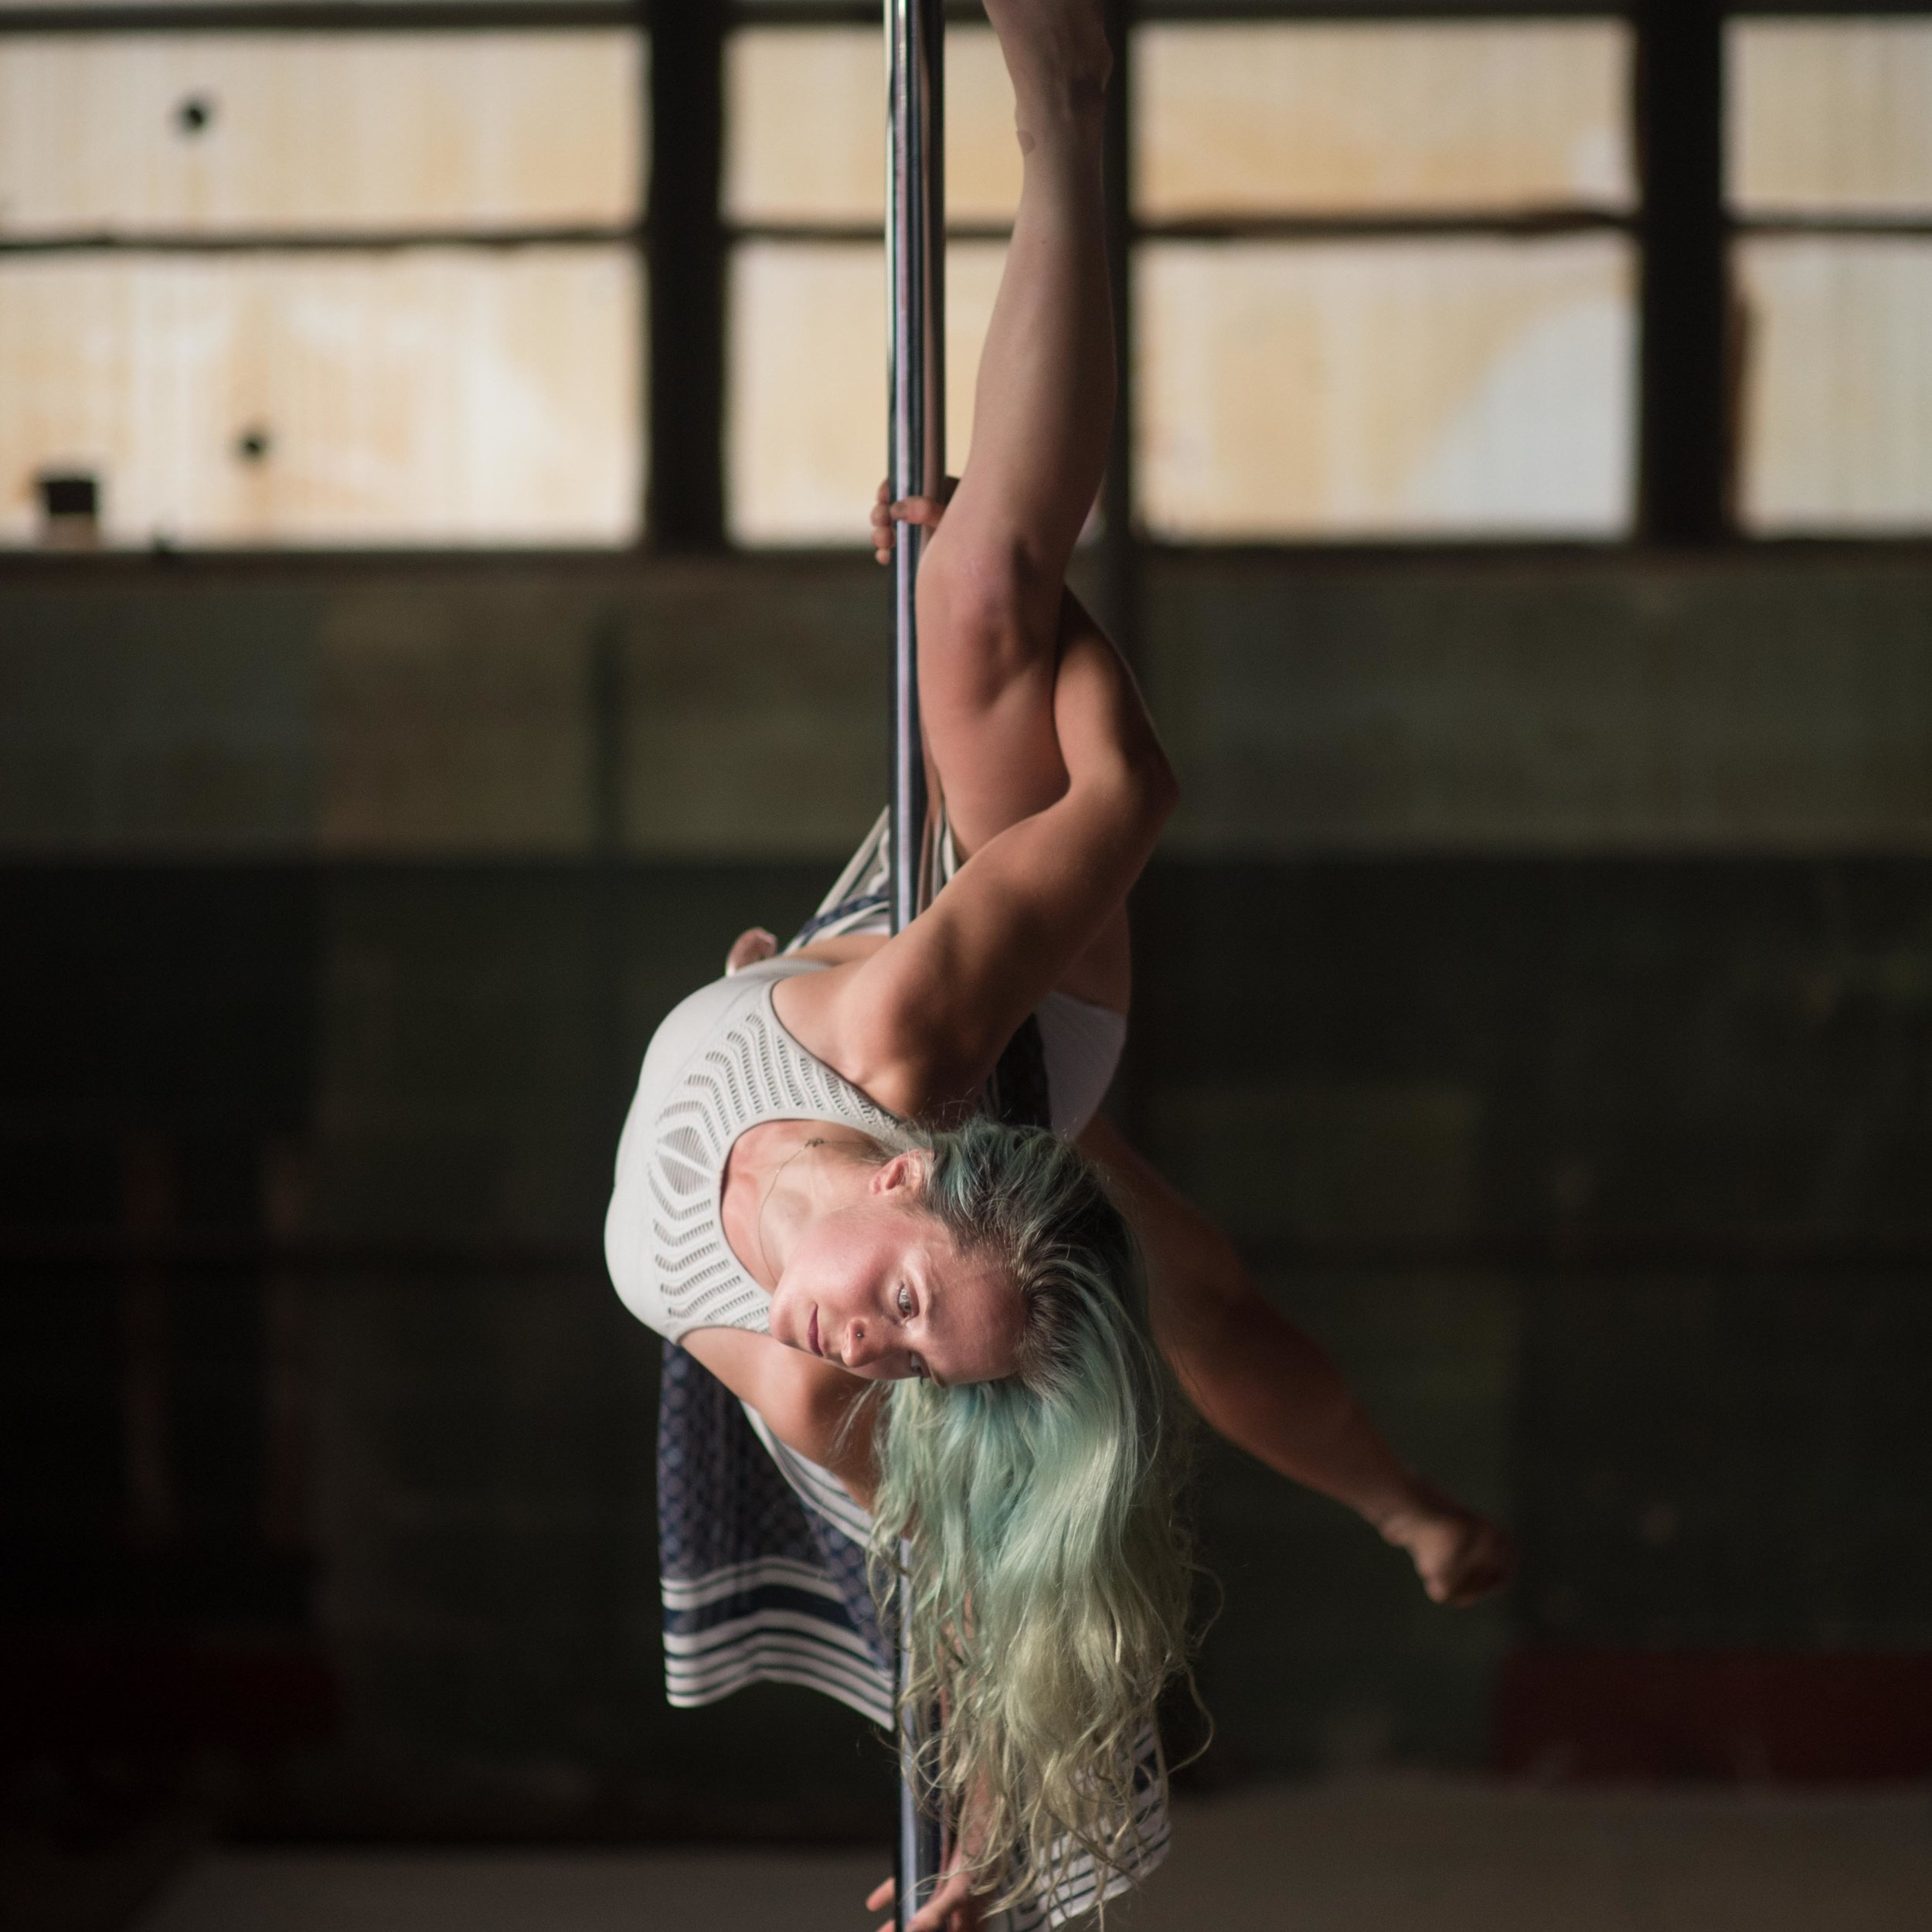 Sarah Caputi - POLE DANCE INSTRUCTORACRO YOGA, DANCE ACRO, & STANDING ACROBATICS INSTRUCTORSarah began learning pole dance in 2014. Her movement repertoire has since expanded to include yoga, acro yoga, partner acrobatics, dance acrobatics, aerial silks, contact improvisation, and more.Sarah is an X-Pert X-Pole certified pole instructor and has been teaching since 2016. She has trained under renowned teachers such as Marion Crampe, Colleen Jolly, Sergia Louise Anderson, Marlow Fisken, Natasha Wang, and others. She has also sought training for partner acrobatics and acro dance from Niko Douwes, Hobs Hobotus, and Elio Blox. She has been to LIFT School Of Acrobatics Advanced Immersion, Pitch Catch Circus H2H Intensive 2018, the Icarian Intensive with Acro Bear and Squirrel.